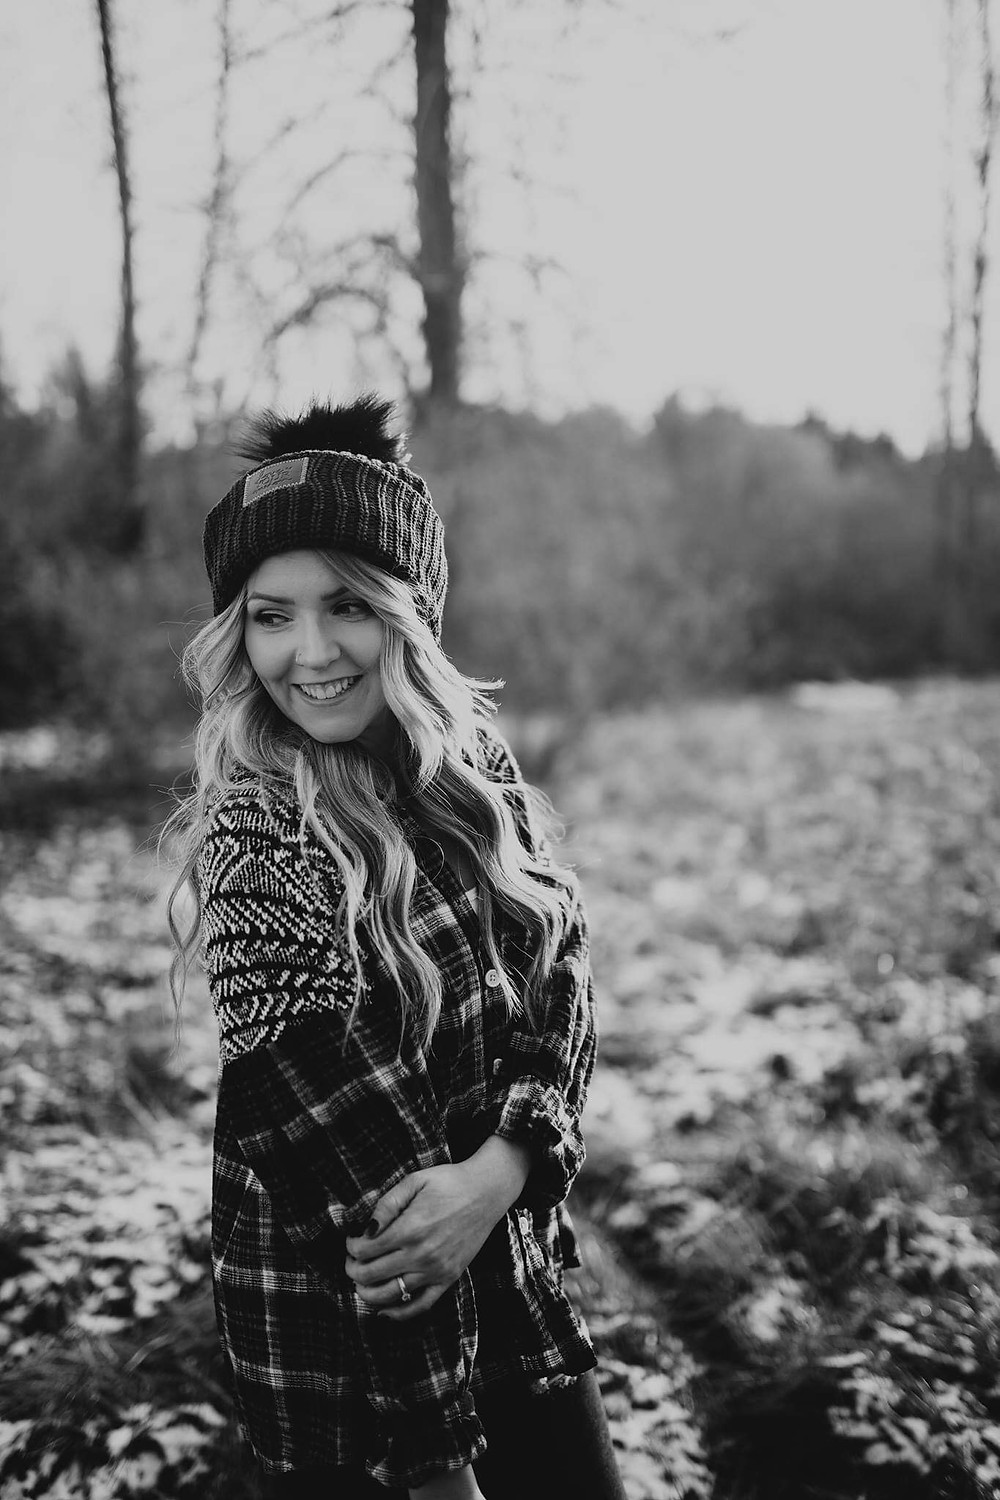 Love Your Melon, Free People, Natural Beaded Row Extensions, Hair Extensions, Photography, Nature, Black and White, Looks Like Film, Winter Beanie, Flannel, Long Hair,